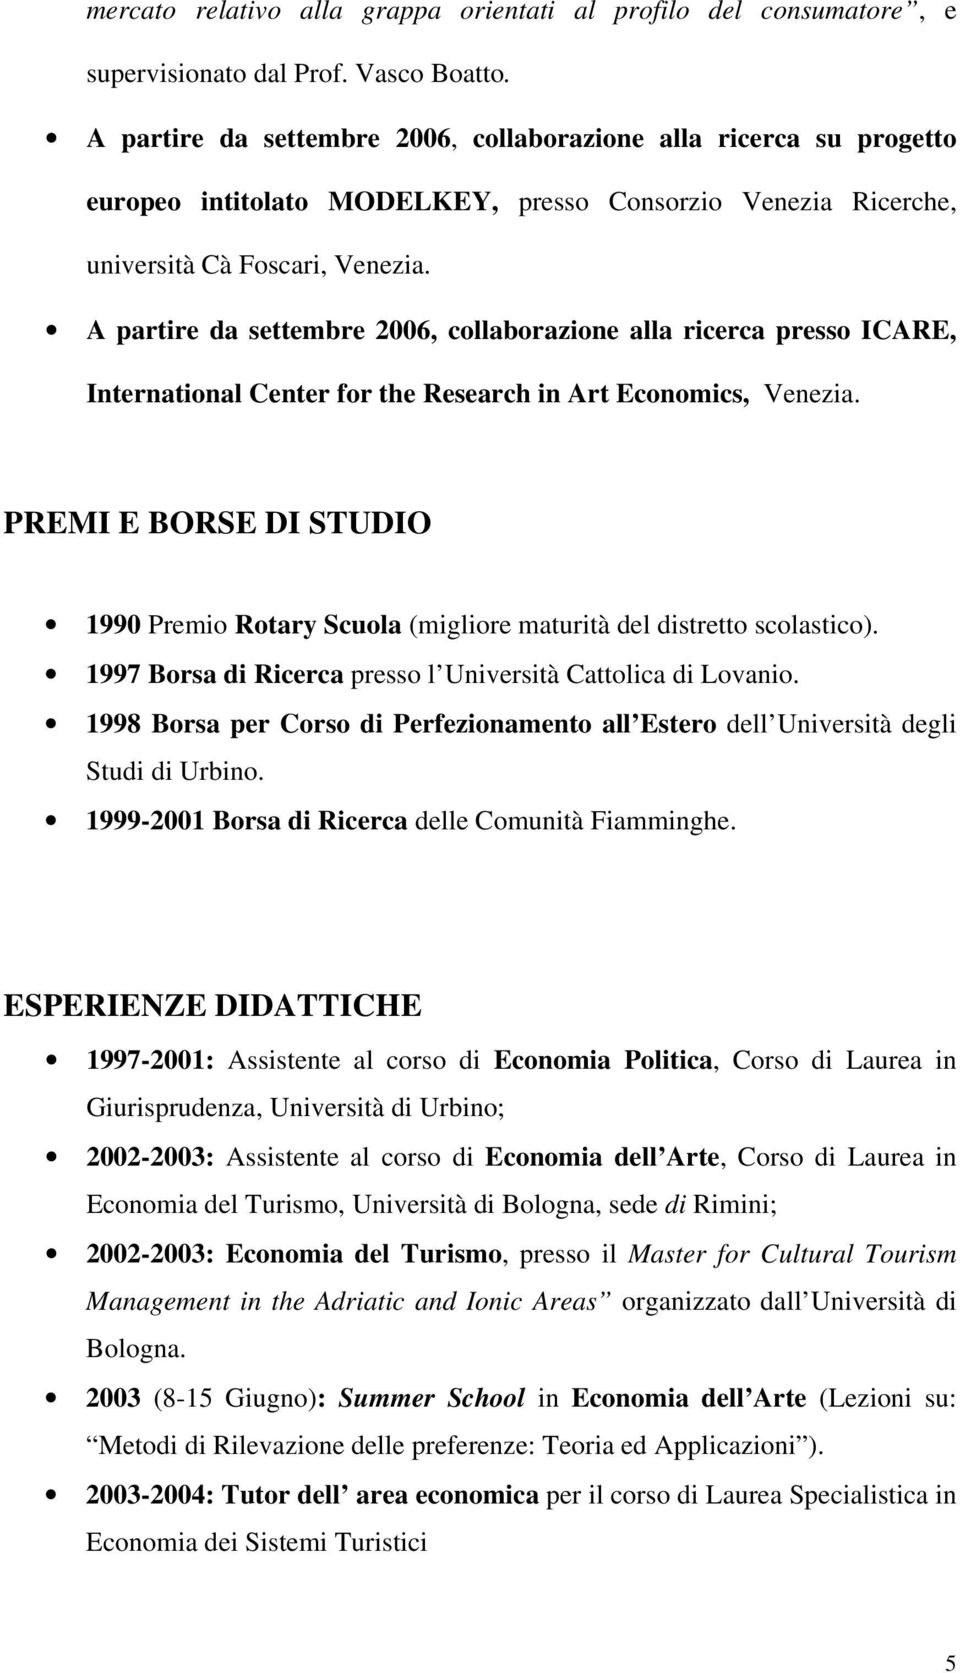 A partire da settembre 2006, collaborazione alla ricerca presso ICARE, International Center for the Research in Art Economics, Venezia.